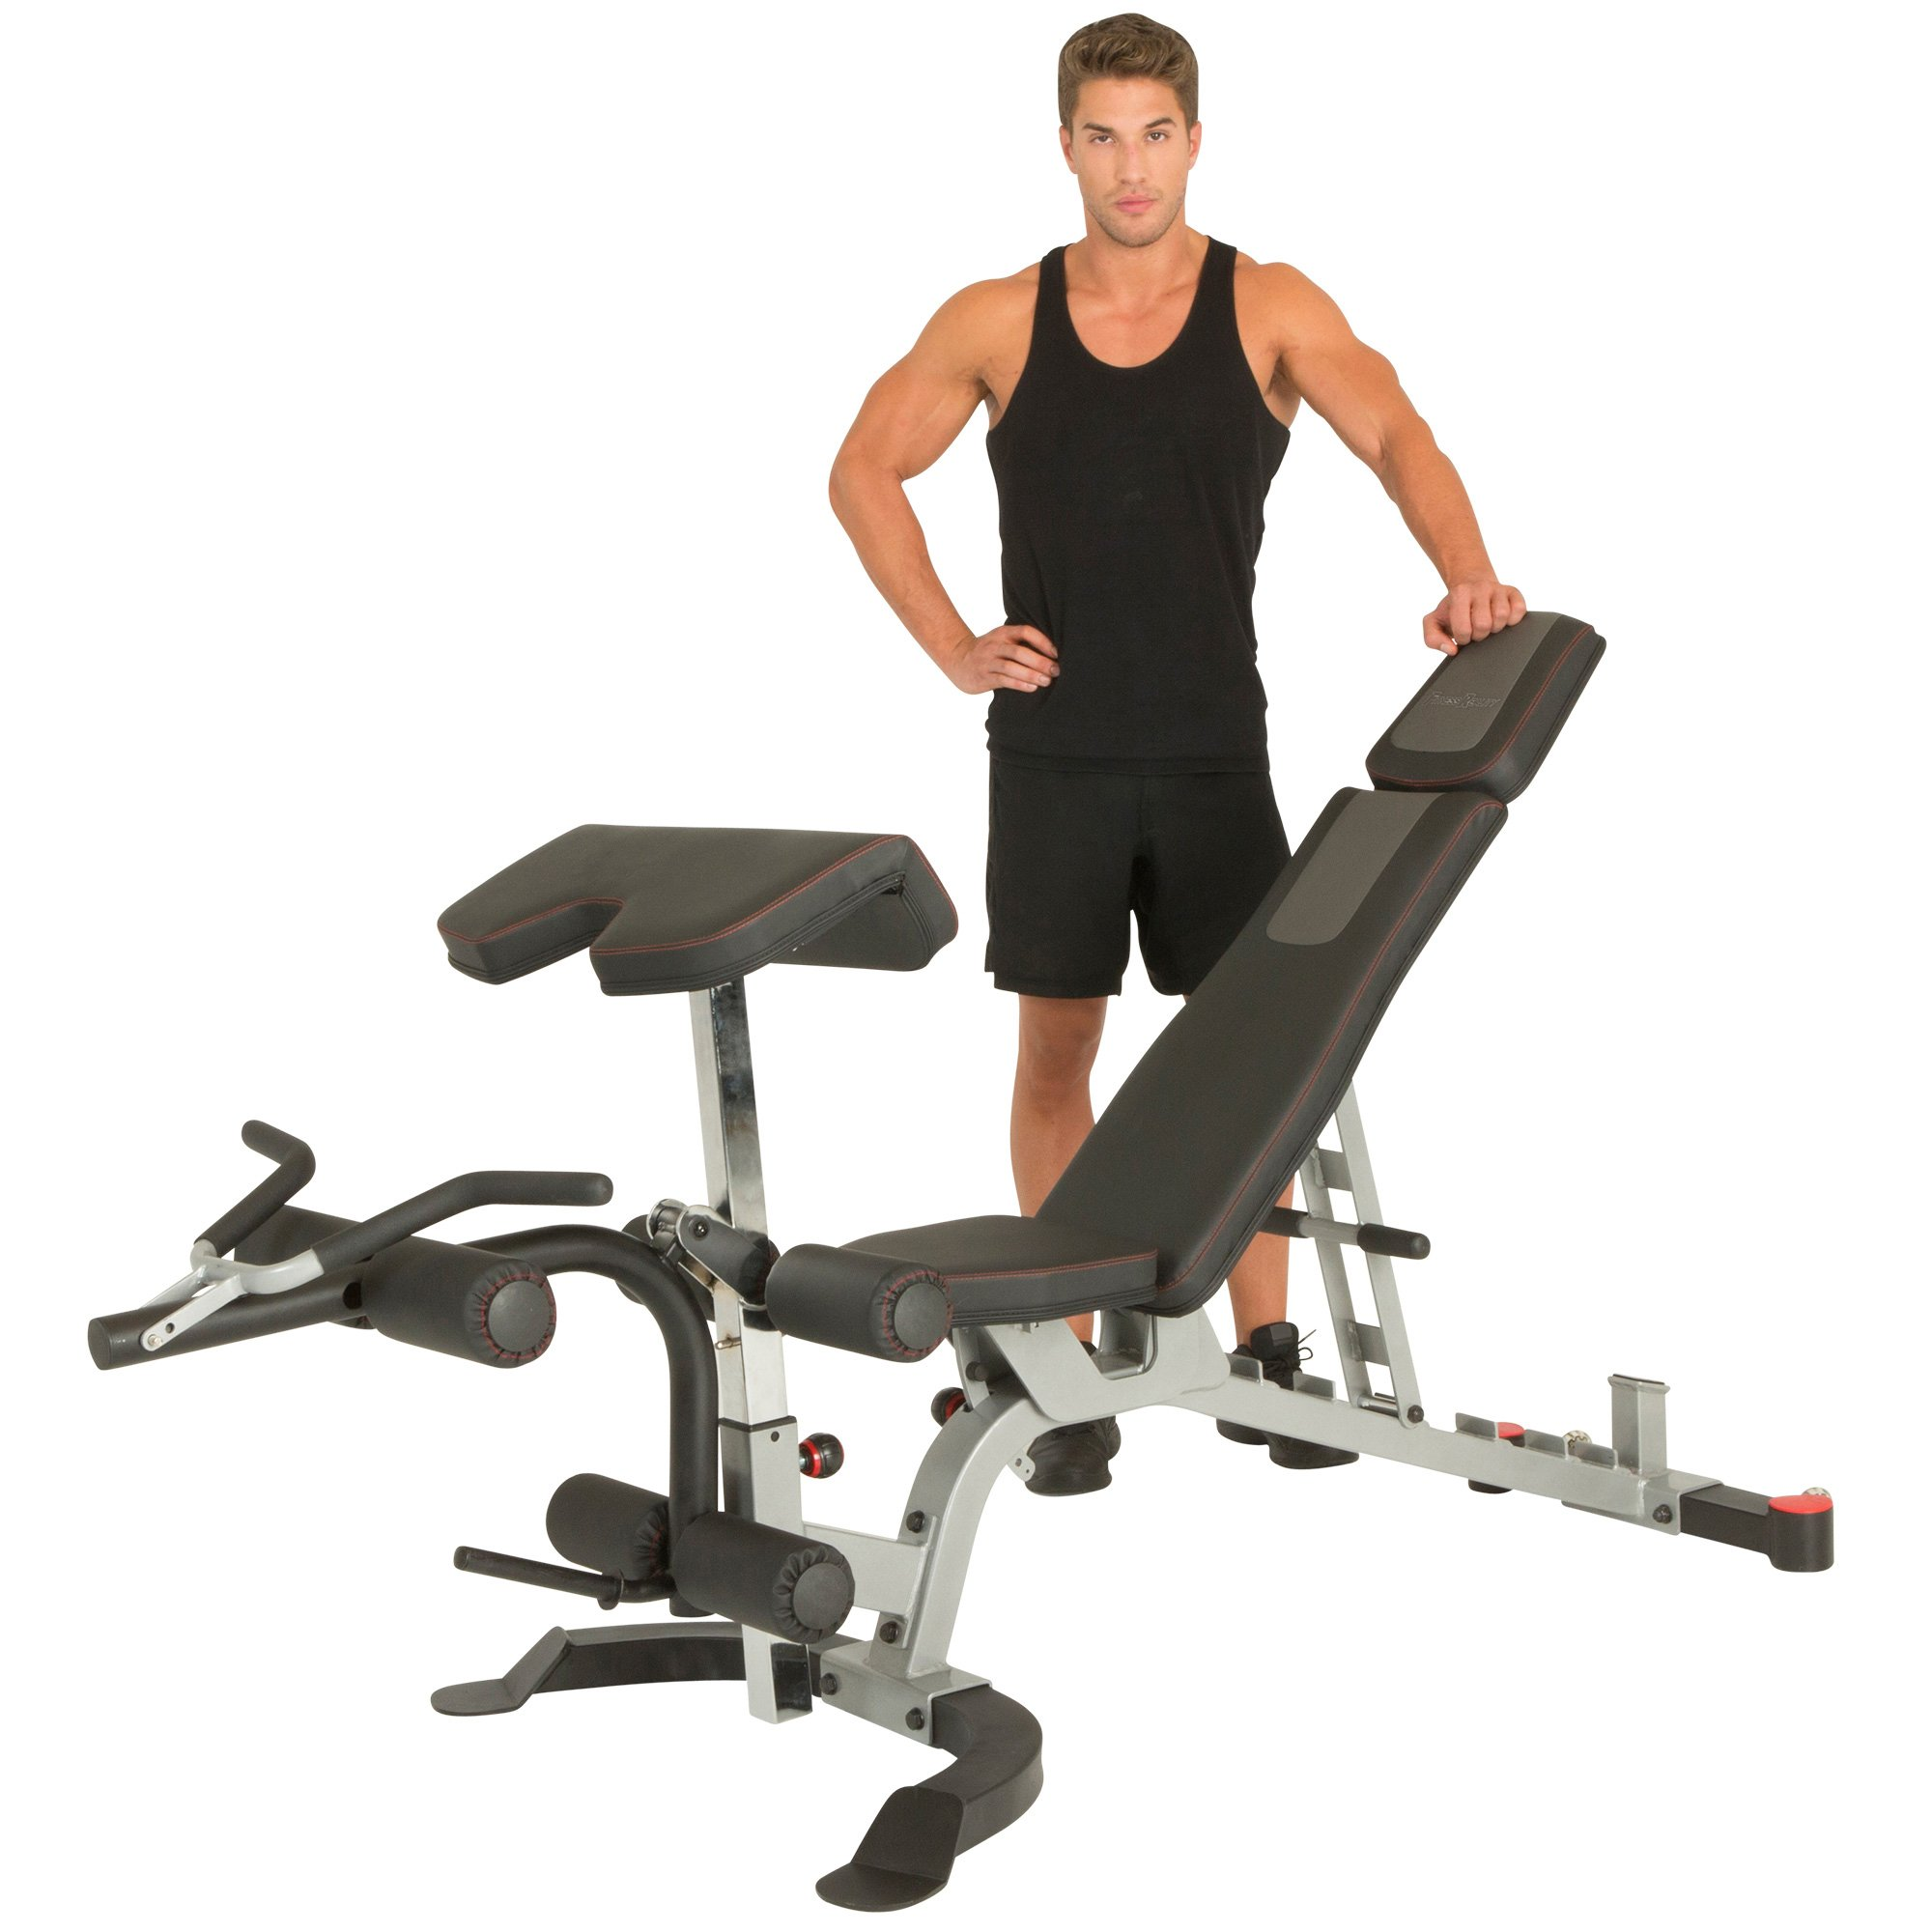 cap weight plus strength w olympic bench chair rack com neutral sports squat and idea nrhcares authority